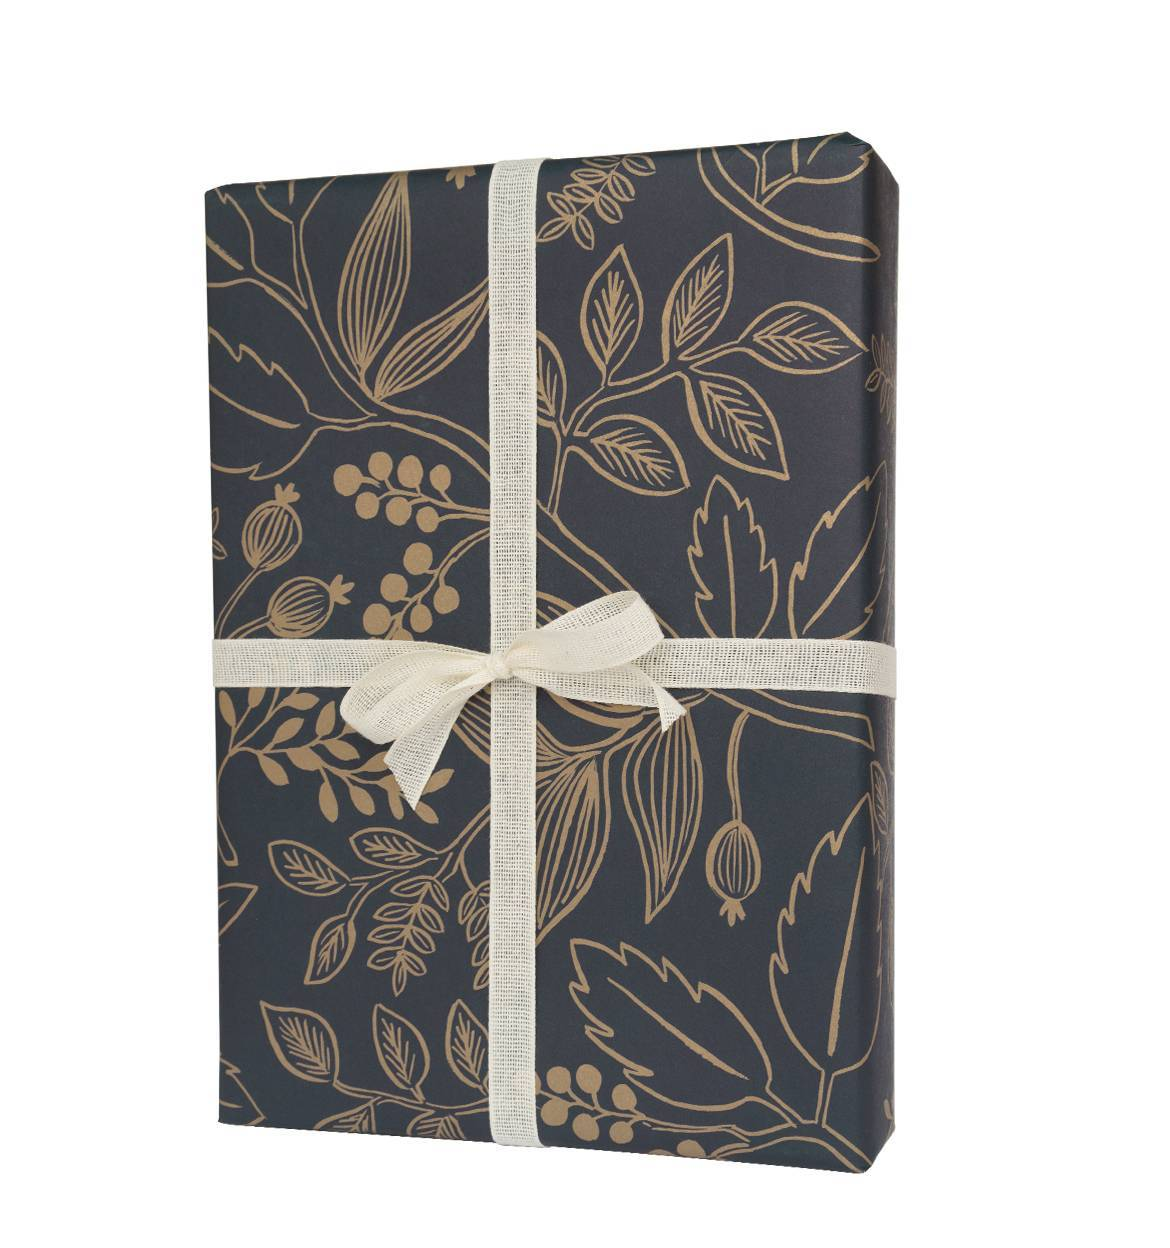 Everyday Wrapping Sheets - Queen Anne